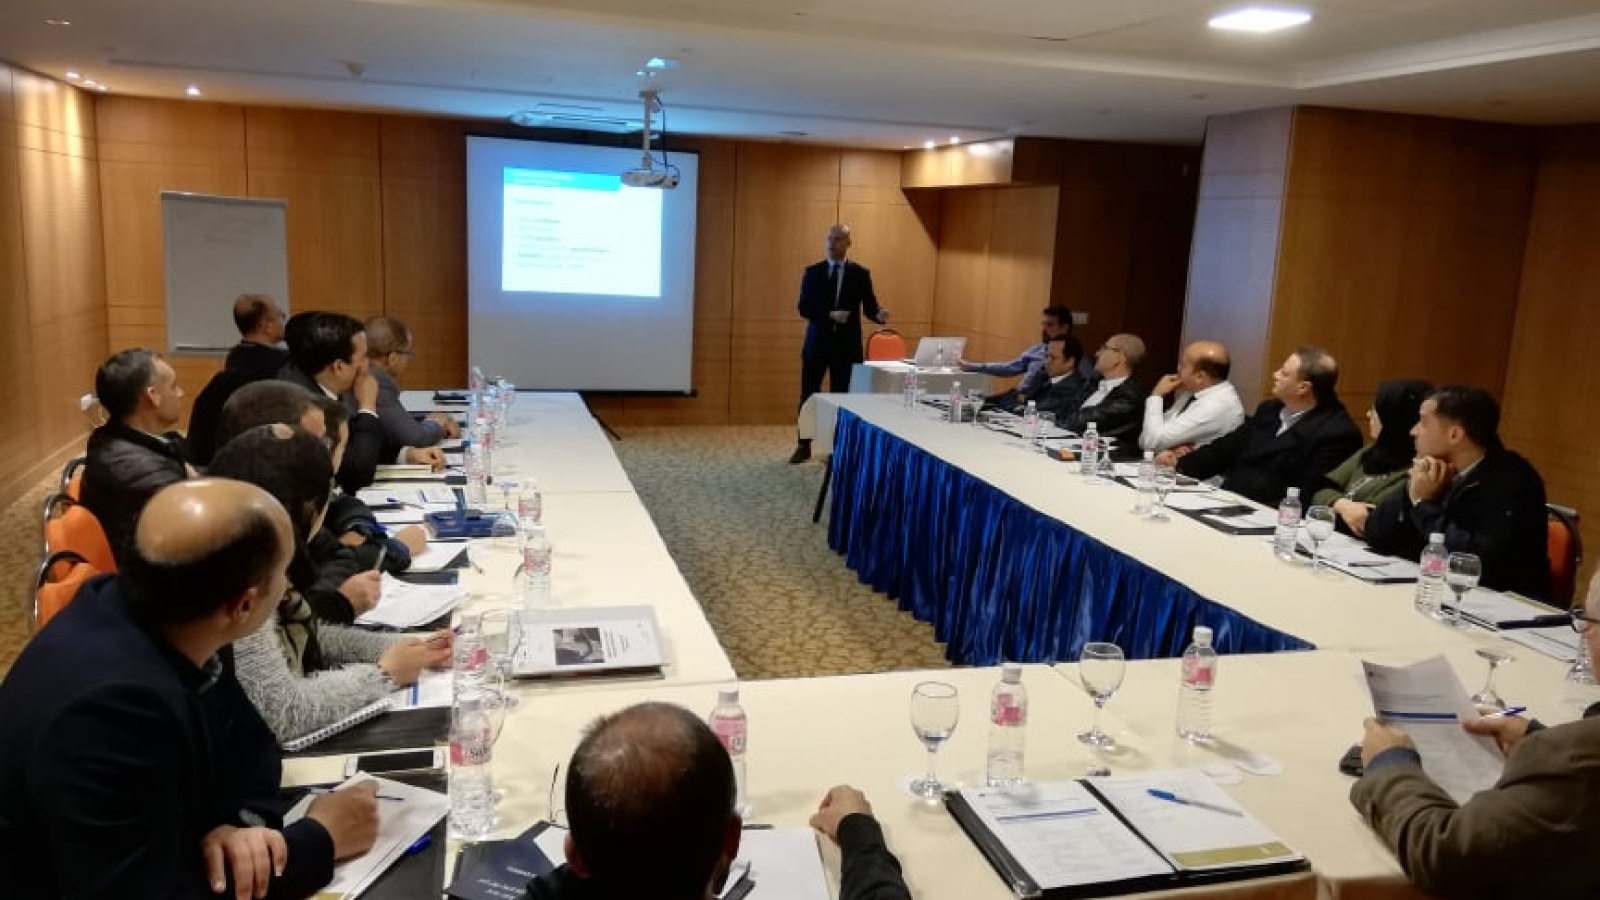 EU-funded SAFEMED IV organises a training on Port Facility Pollution Contingency planning for the Tunisian Maritime Authority